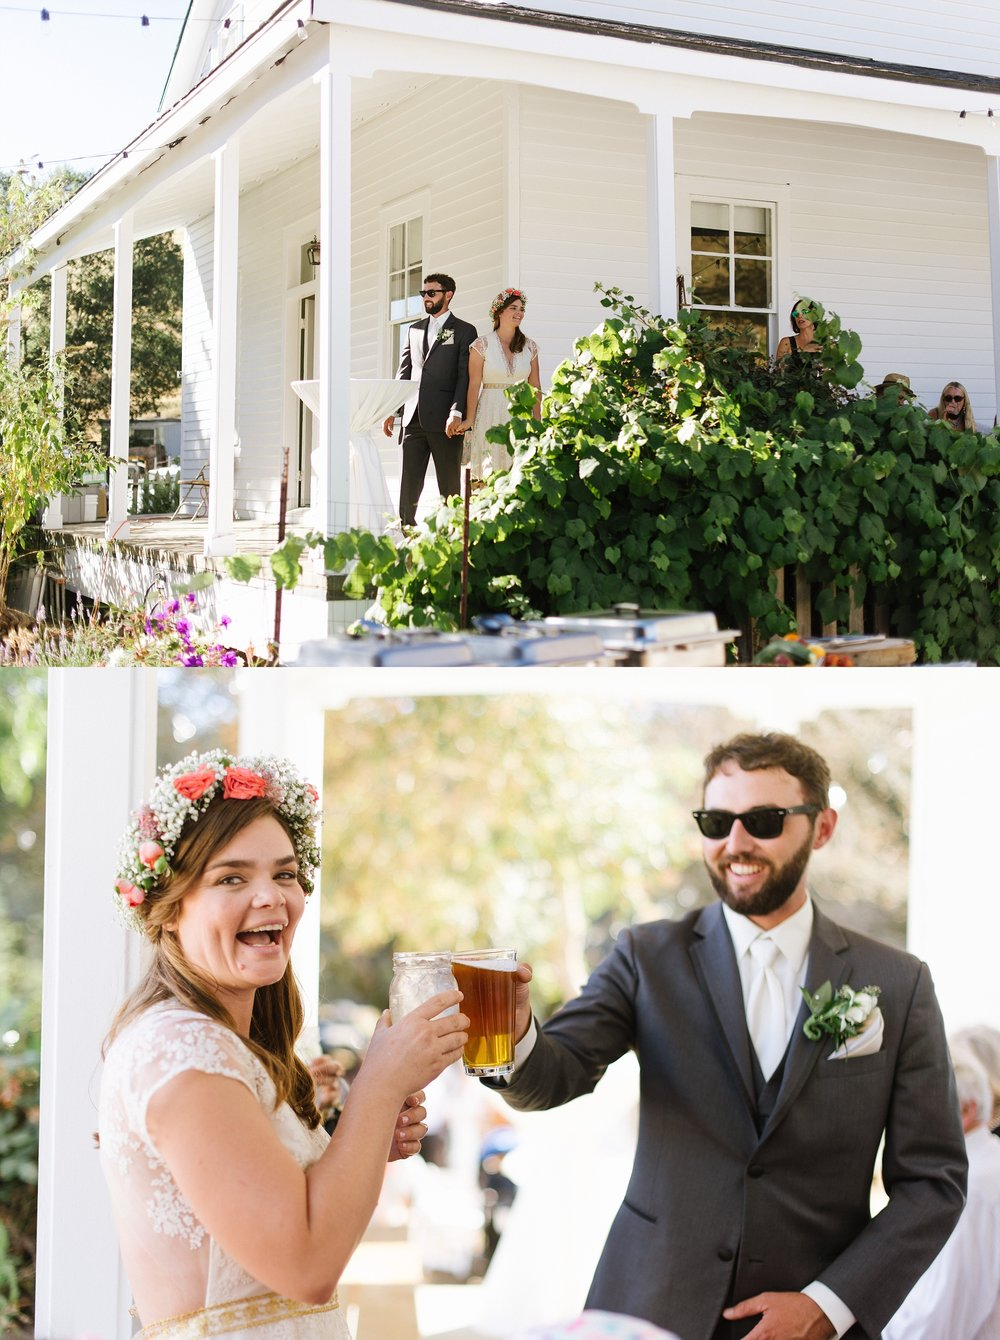 fairfax_ranch_wedding_chelsea_dier_photography_0028.jpg